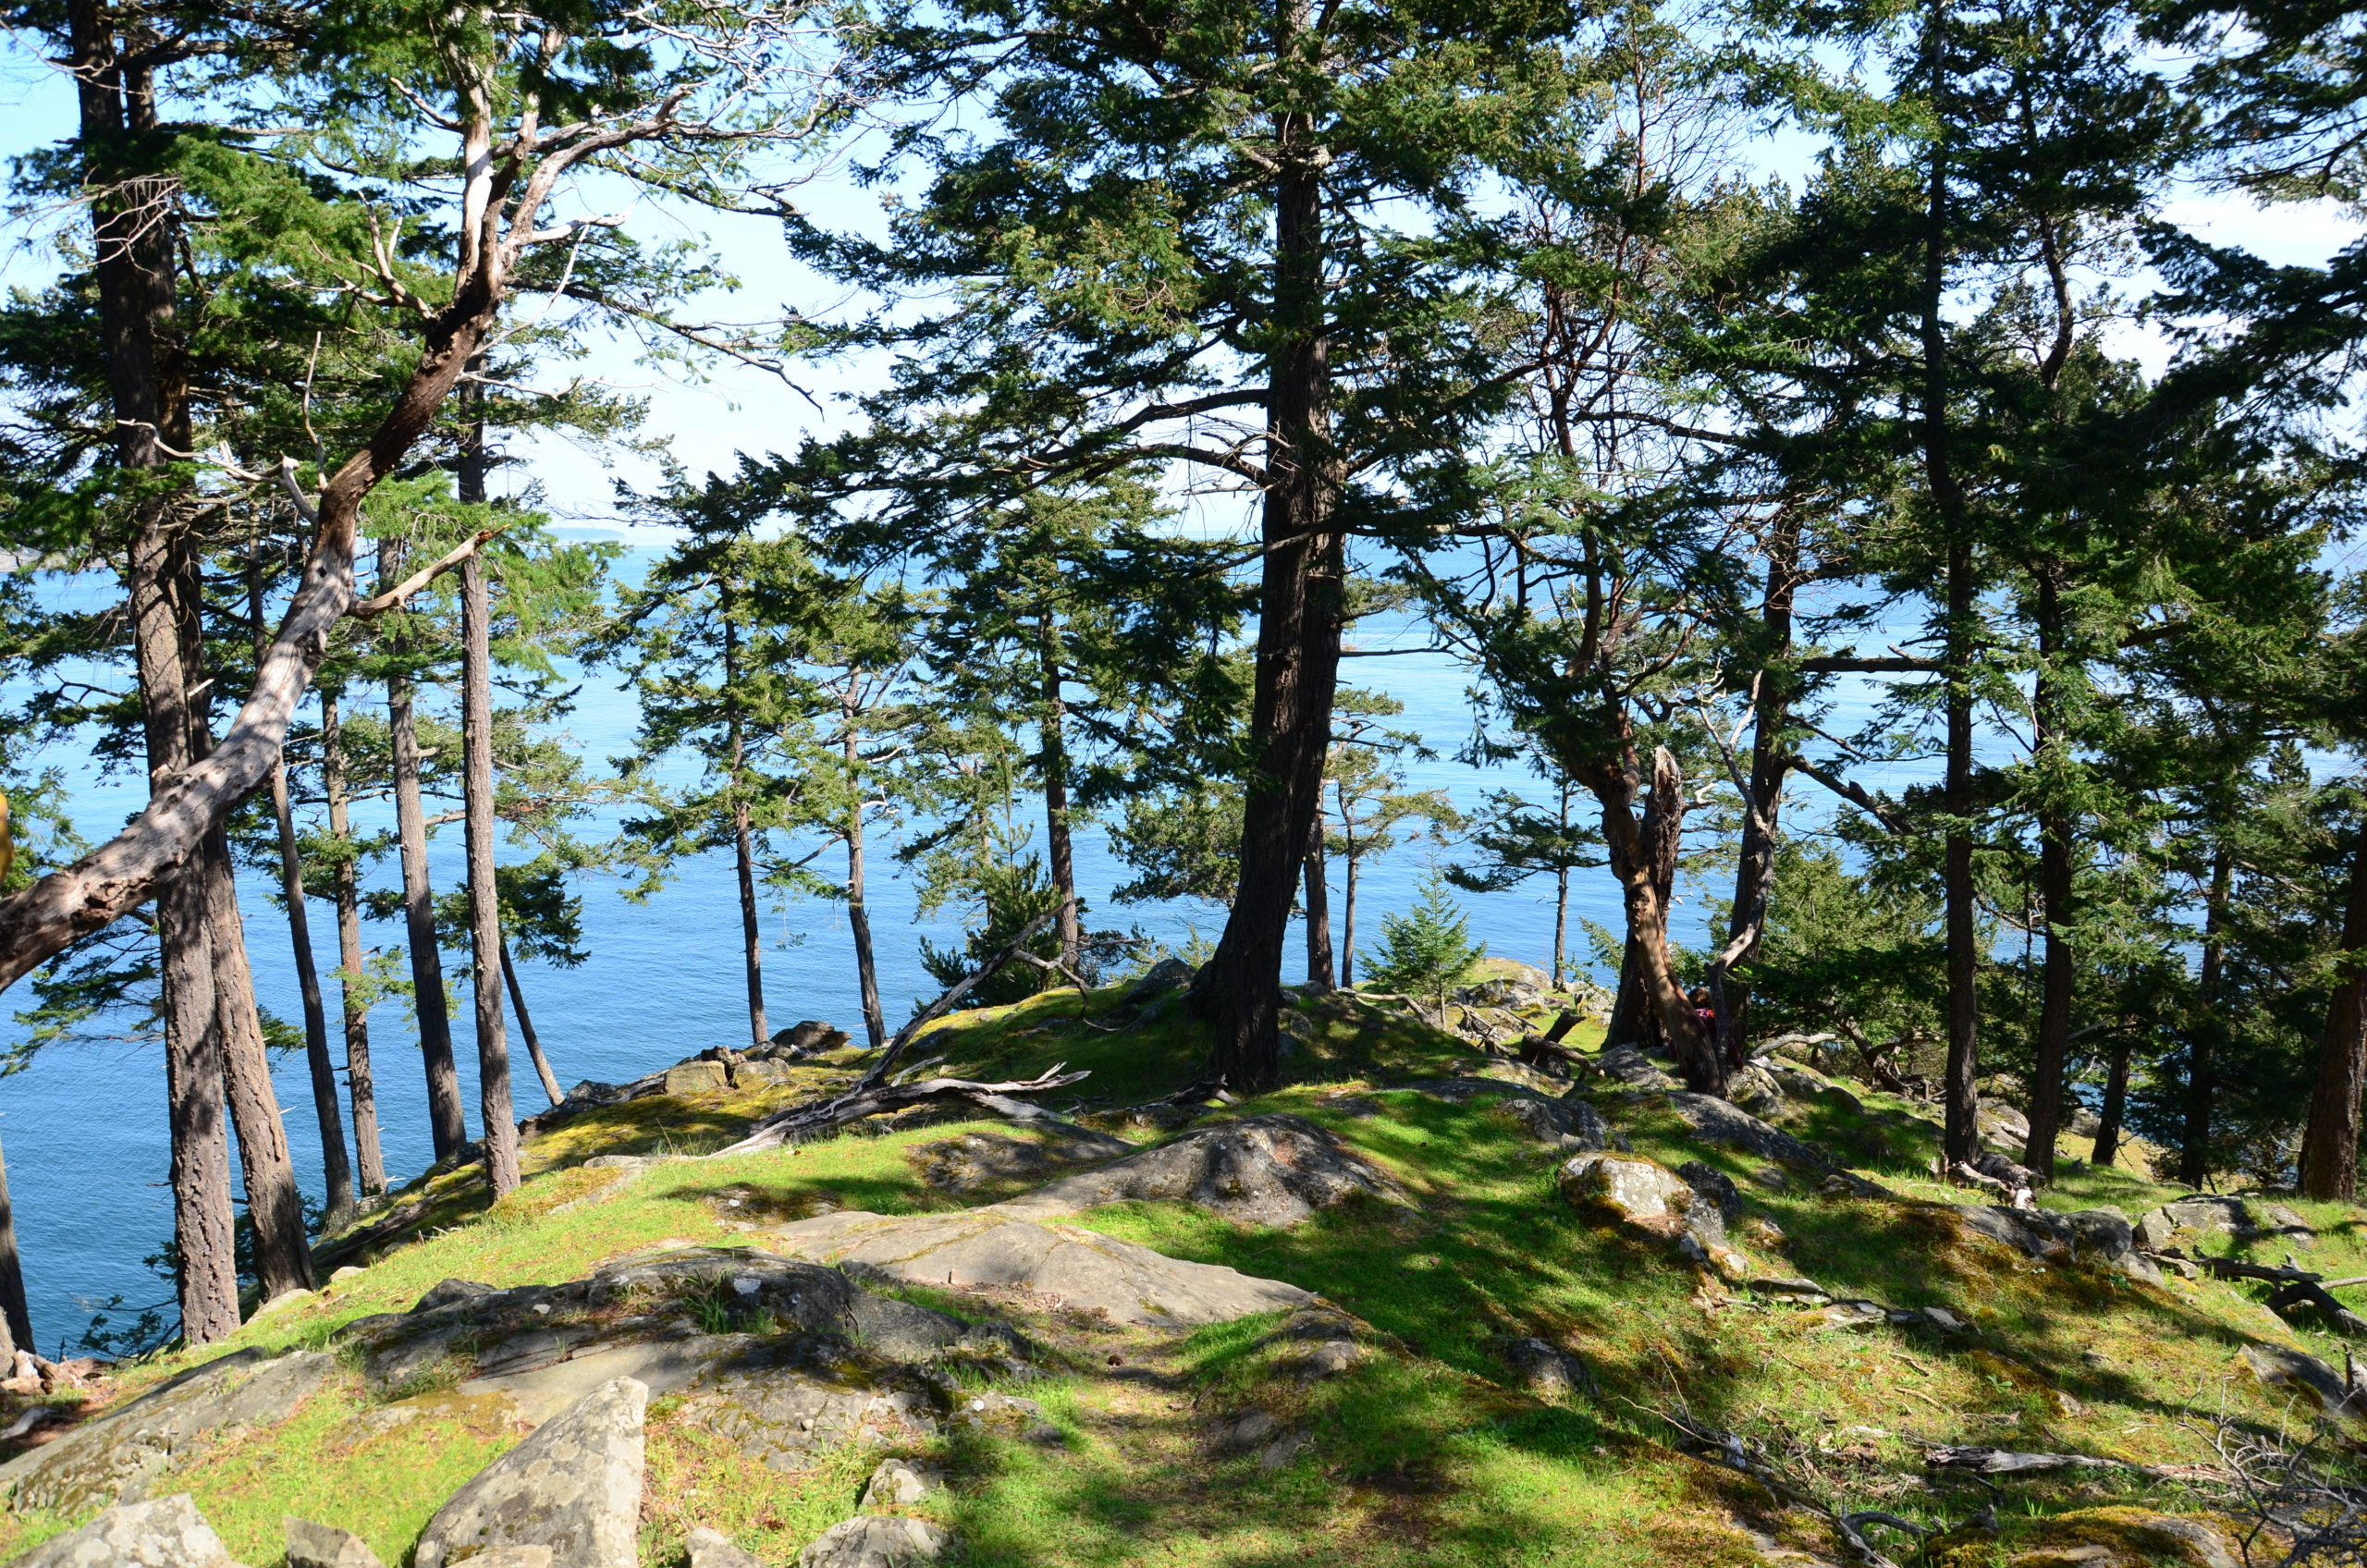 Trees on a mossy rock cliff over an ocean in the sunshine